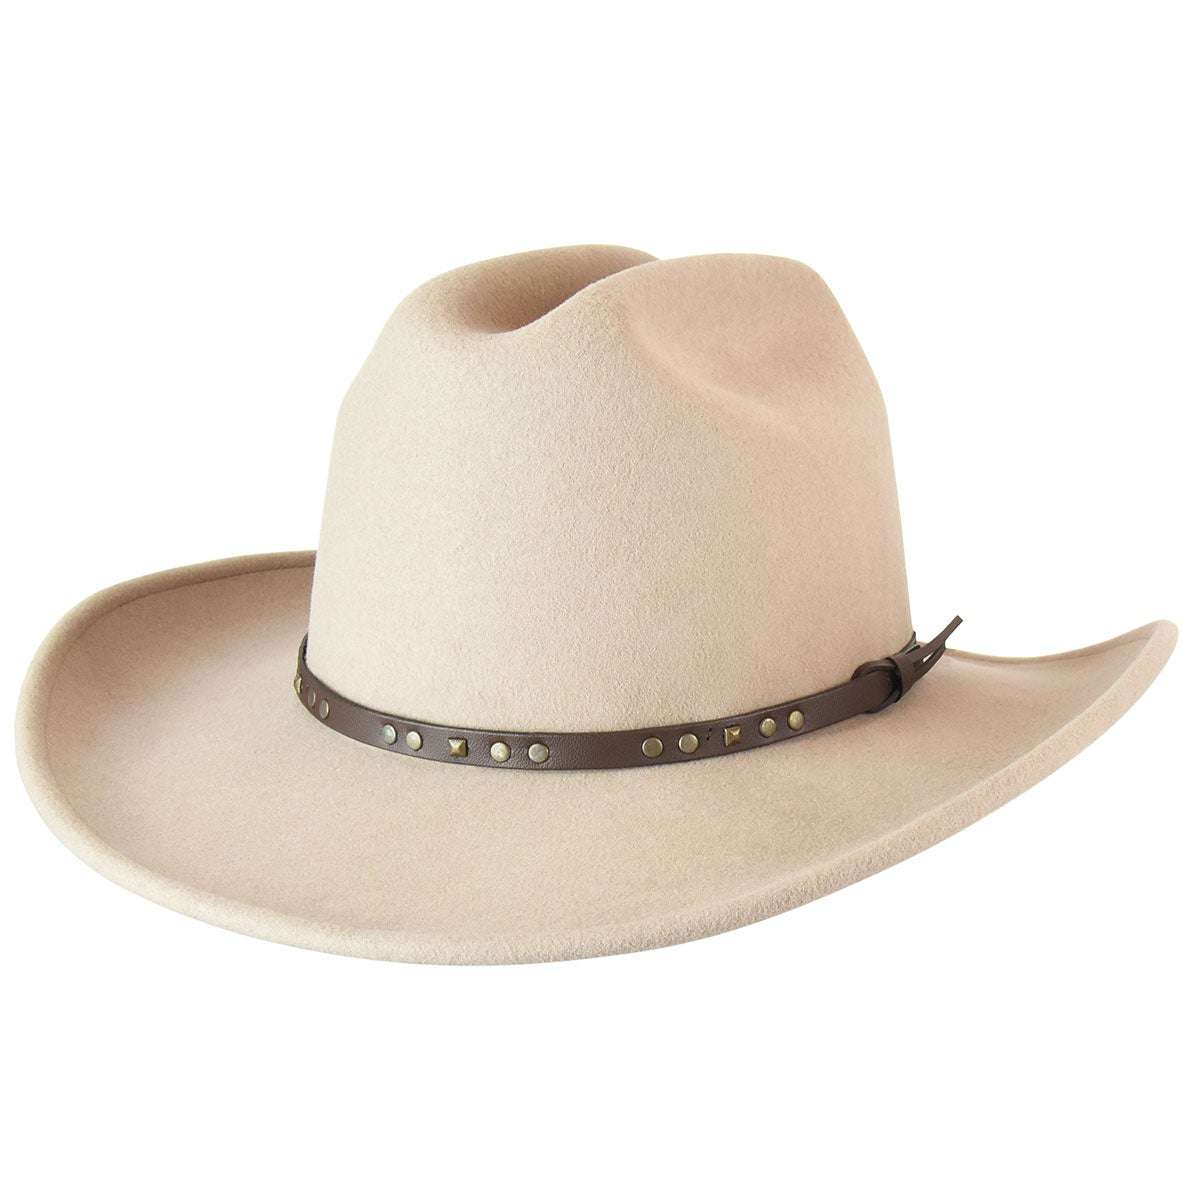 Wind River Wind River Chisolm Western Hat in Rope